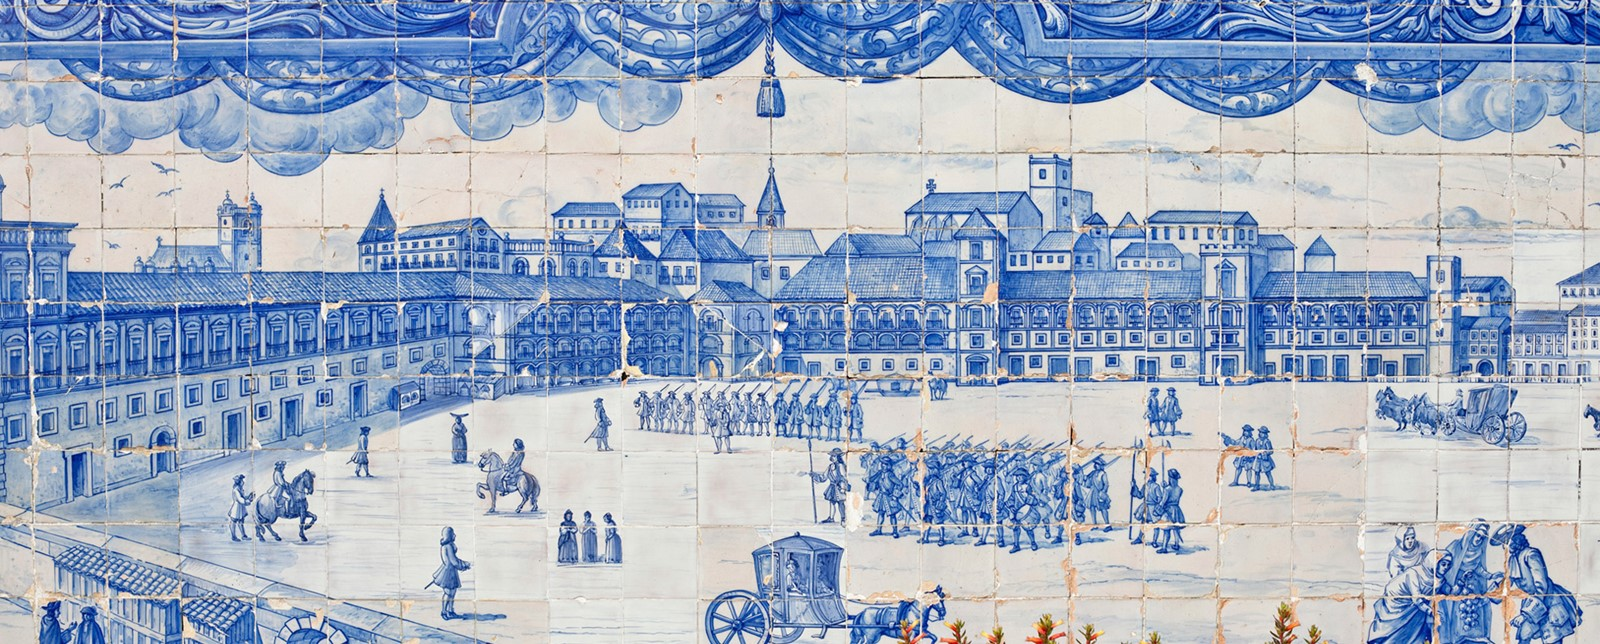 An azulejo mural of soldiers in a town square